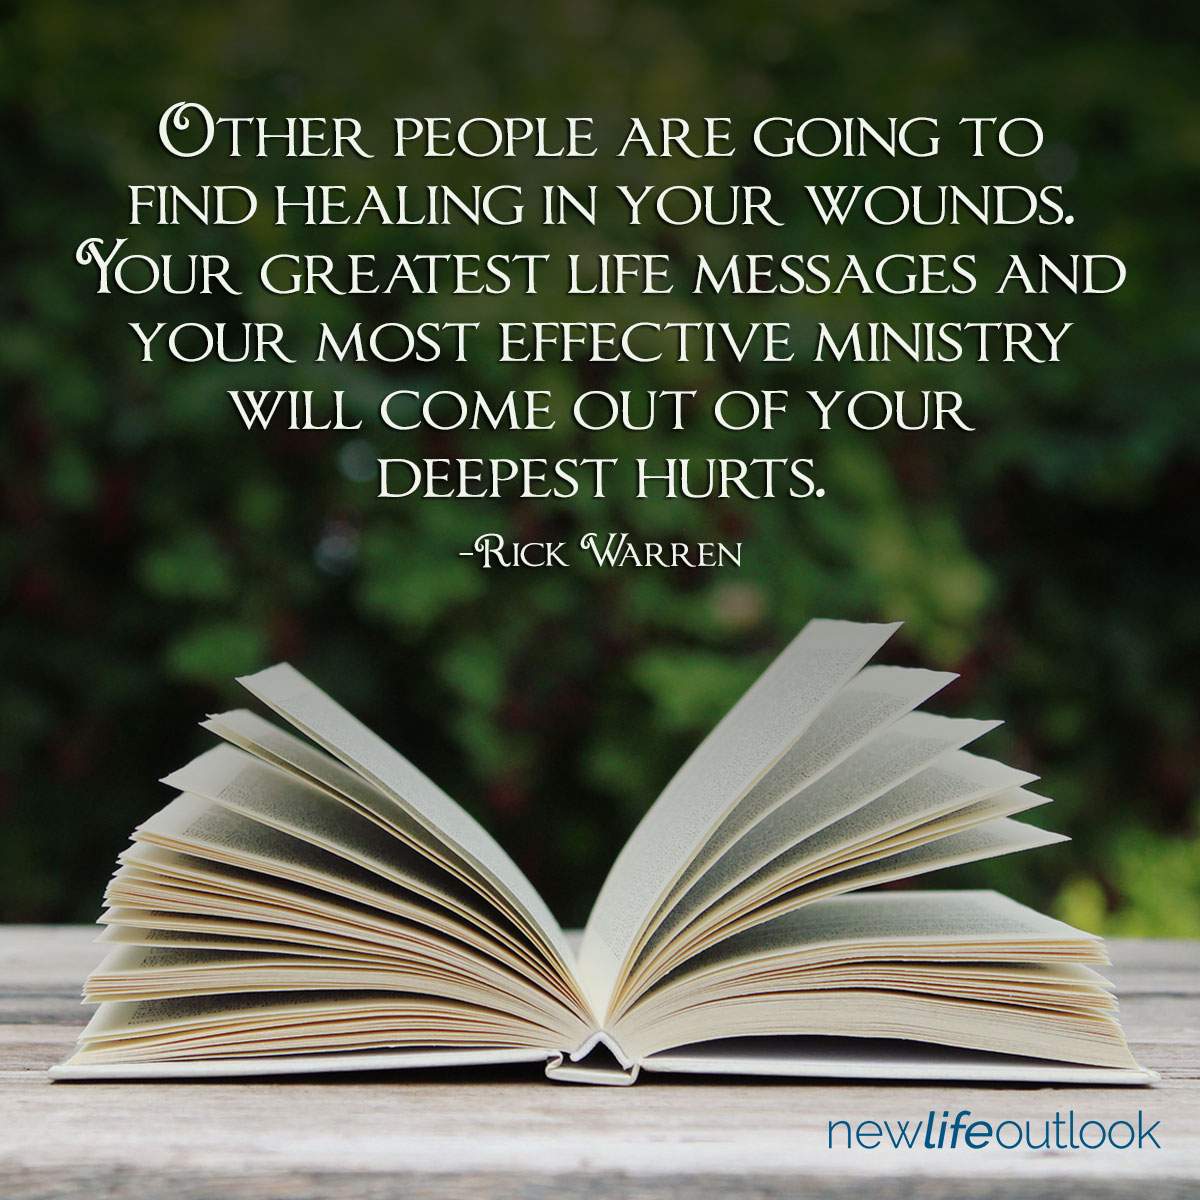 Other people are going to find healing in your wounds